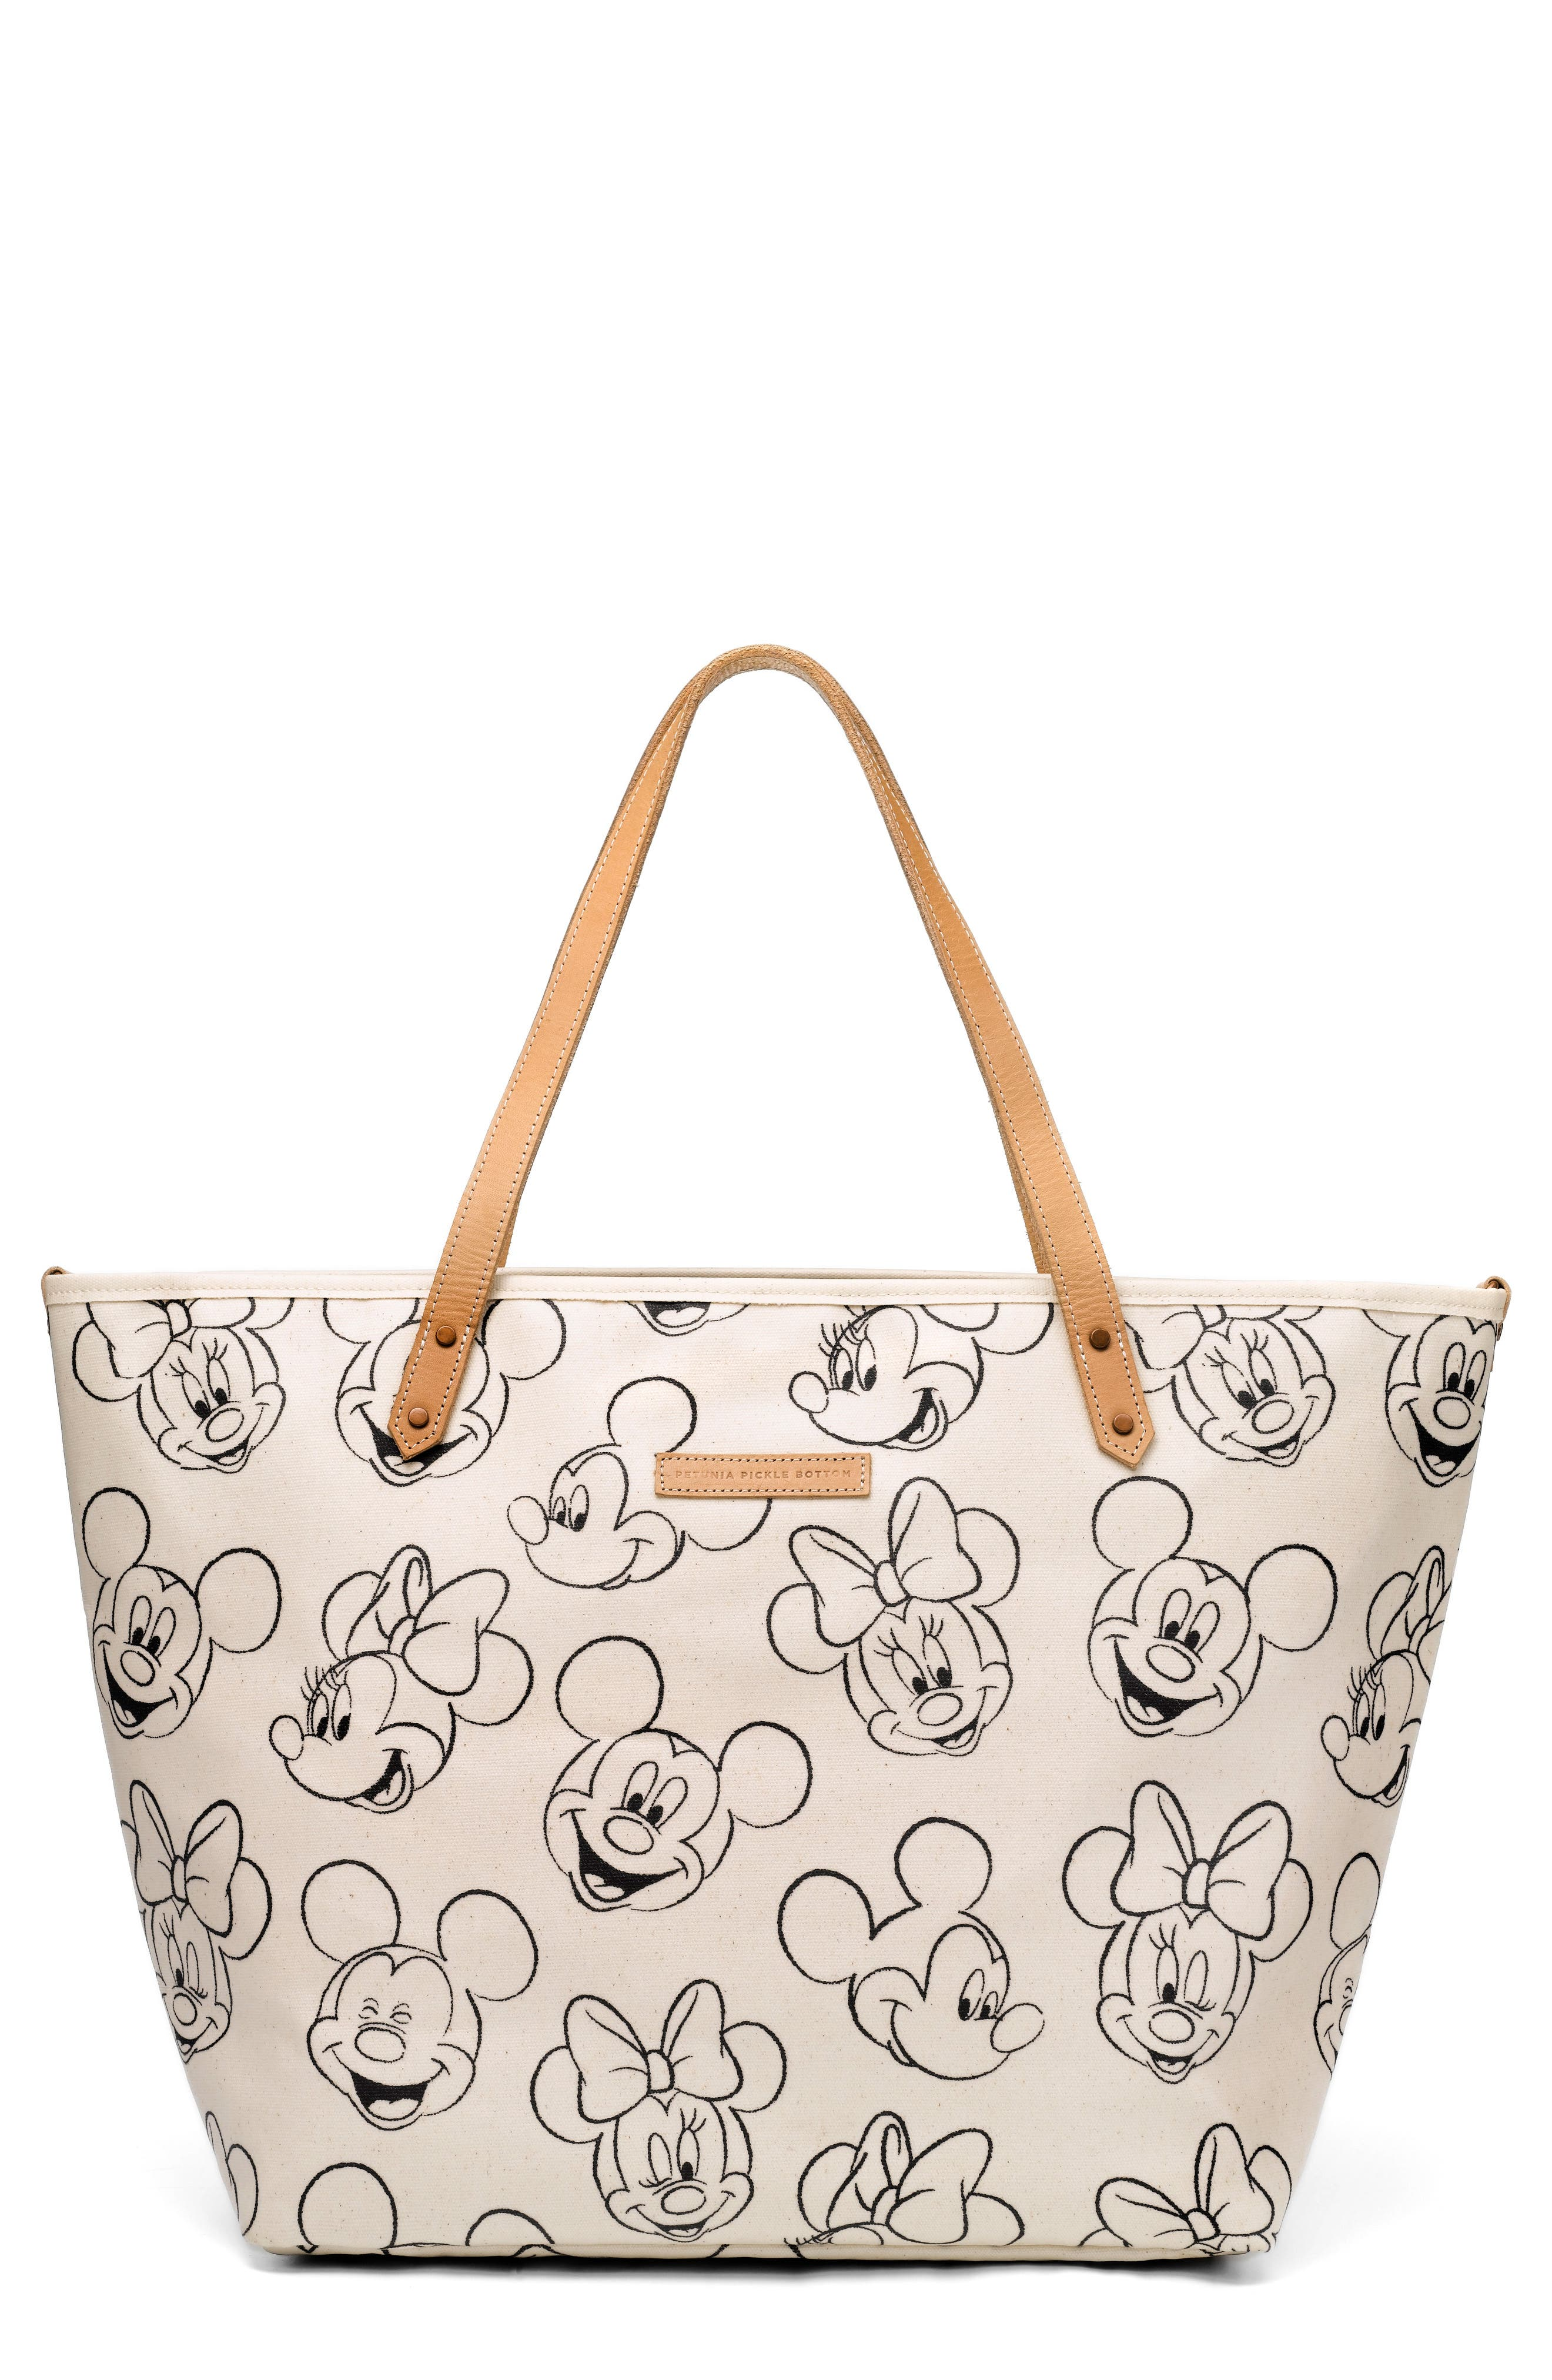 Downtown Disney<sup>®</sup> Mickey Mouse<sup>®</sup> Print Diaper Tote,                             Main thumbnail 1, color,                             SKETCHBOOK